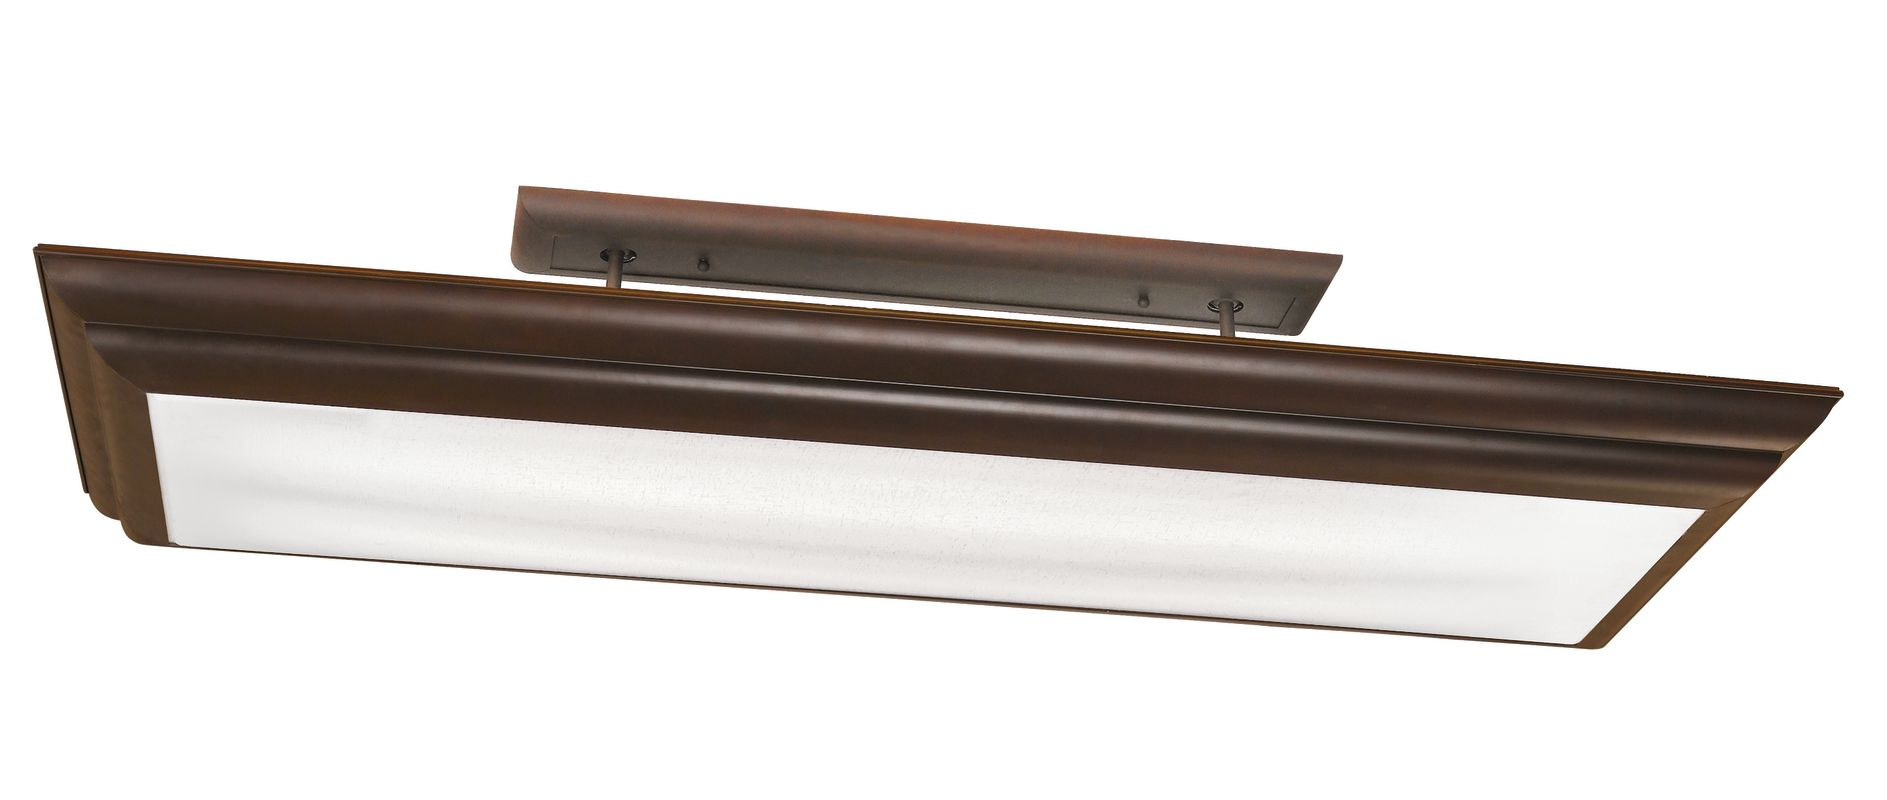 Kichler 10847 4 Light Fluorescent Linear Ceiling Fixture from the Sale $470.00 ITEM: bci1738871 ID#:10847OZ UPC: 783927342940 :